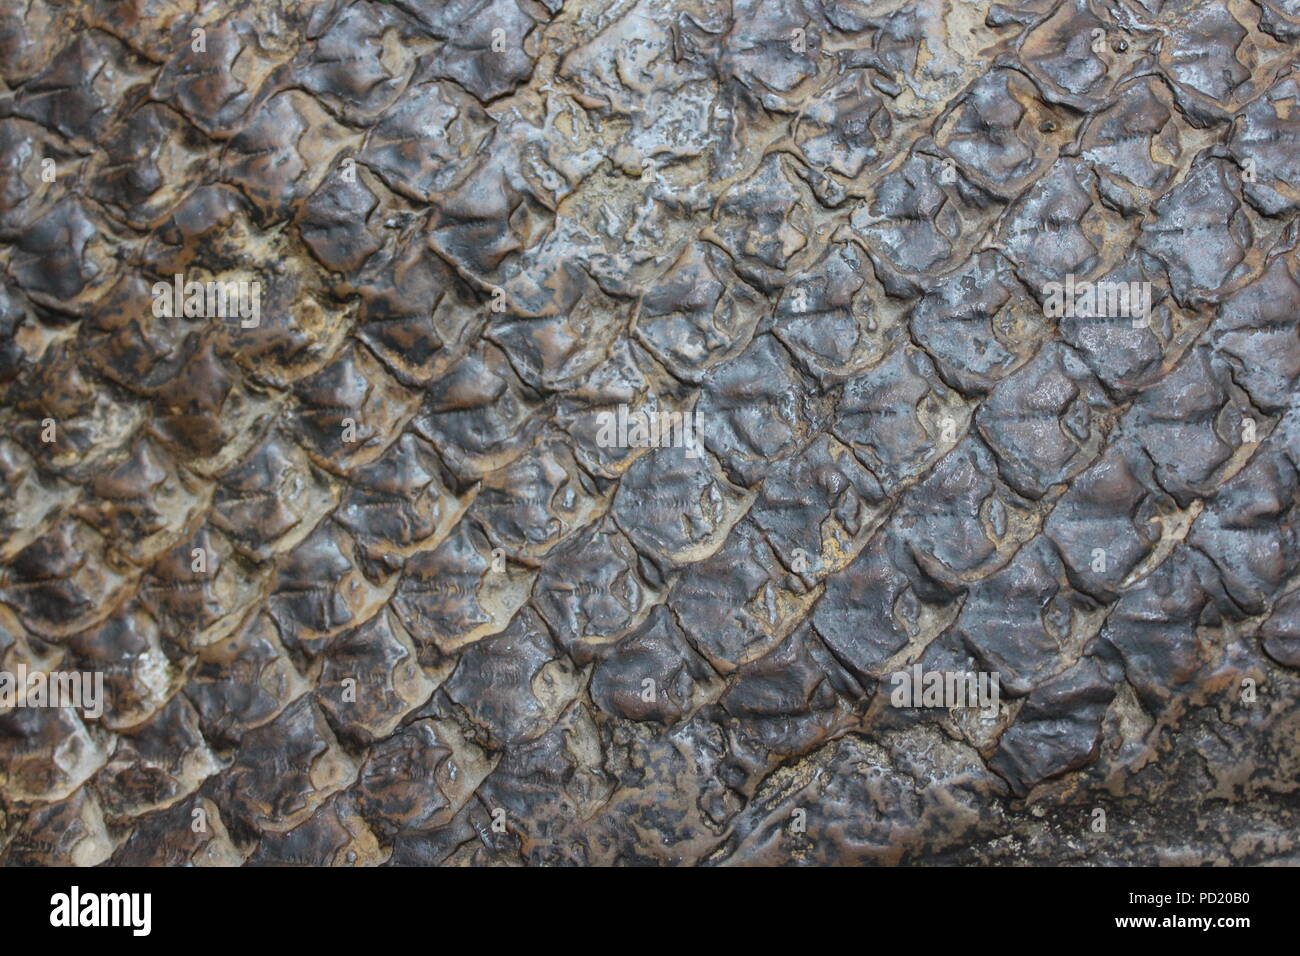 Fossilized remains and impression of fish scales at the Nature Center and interpretation station at the National Historic Landmark The Kennicott Grove in Glenview, Illinois on a bright sunny summer day. - Stock Image